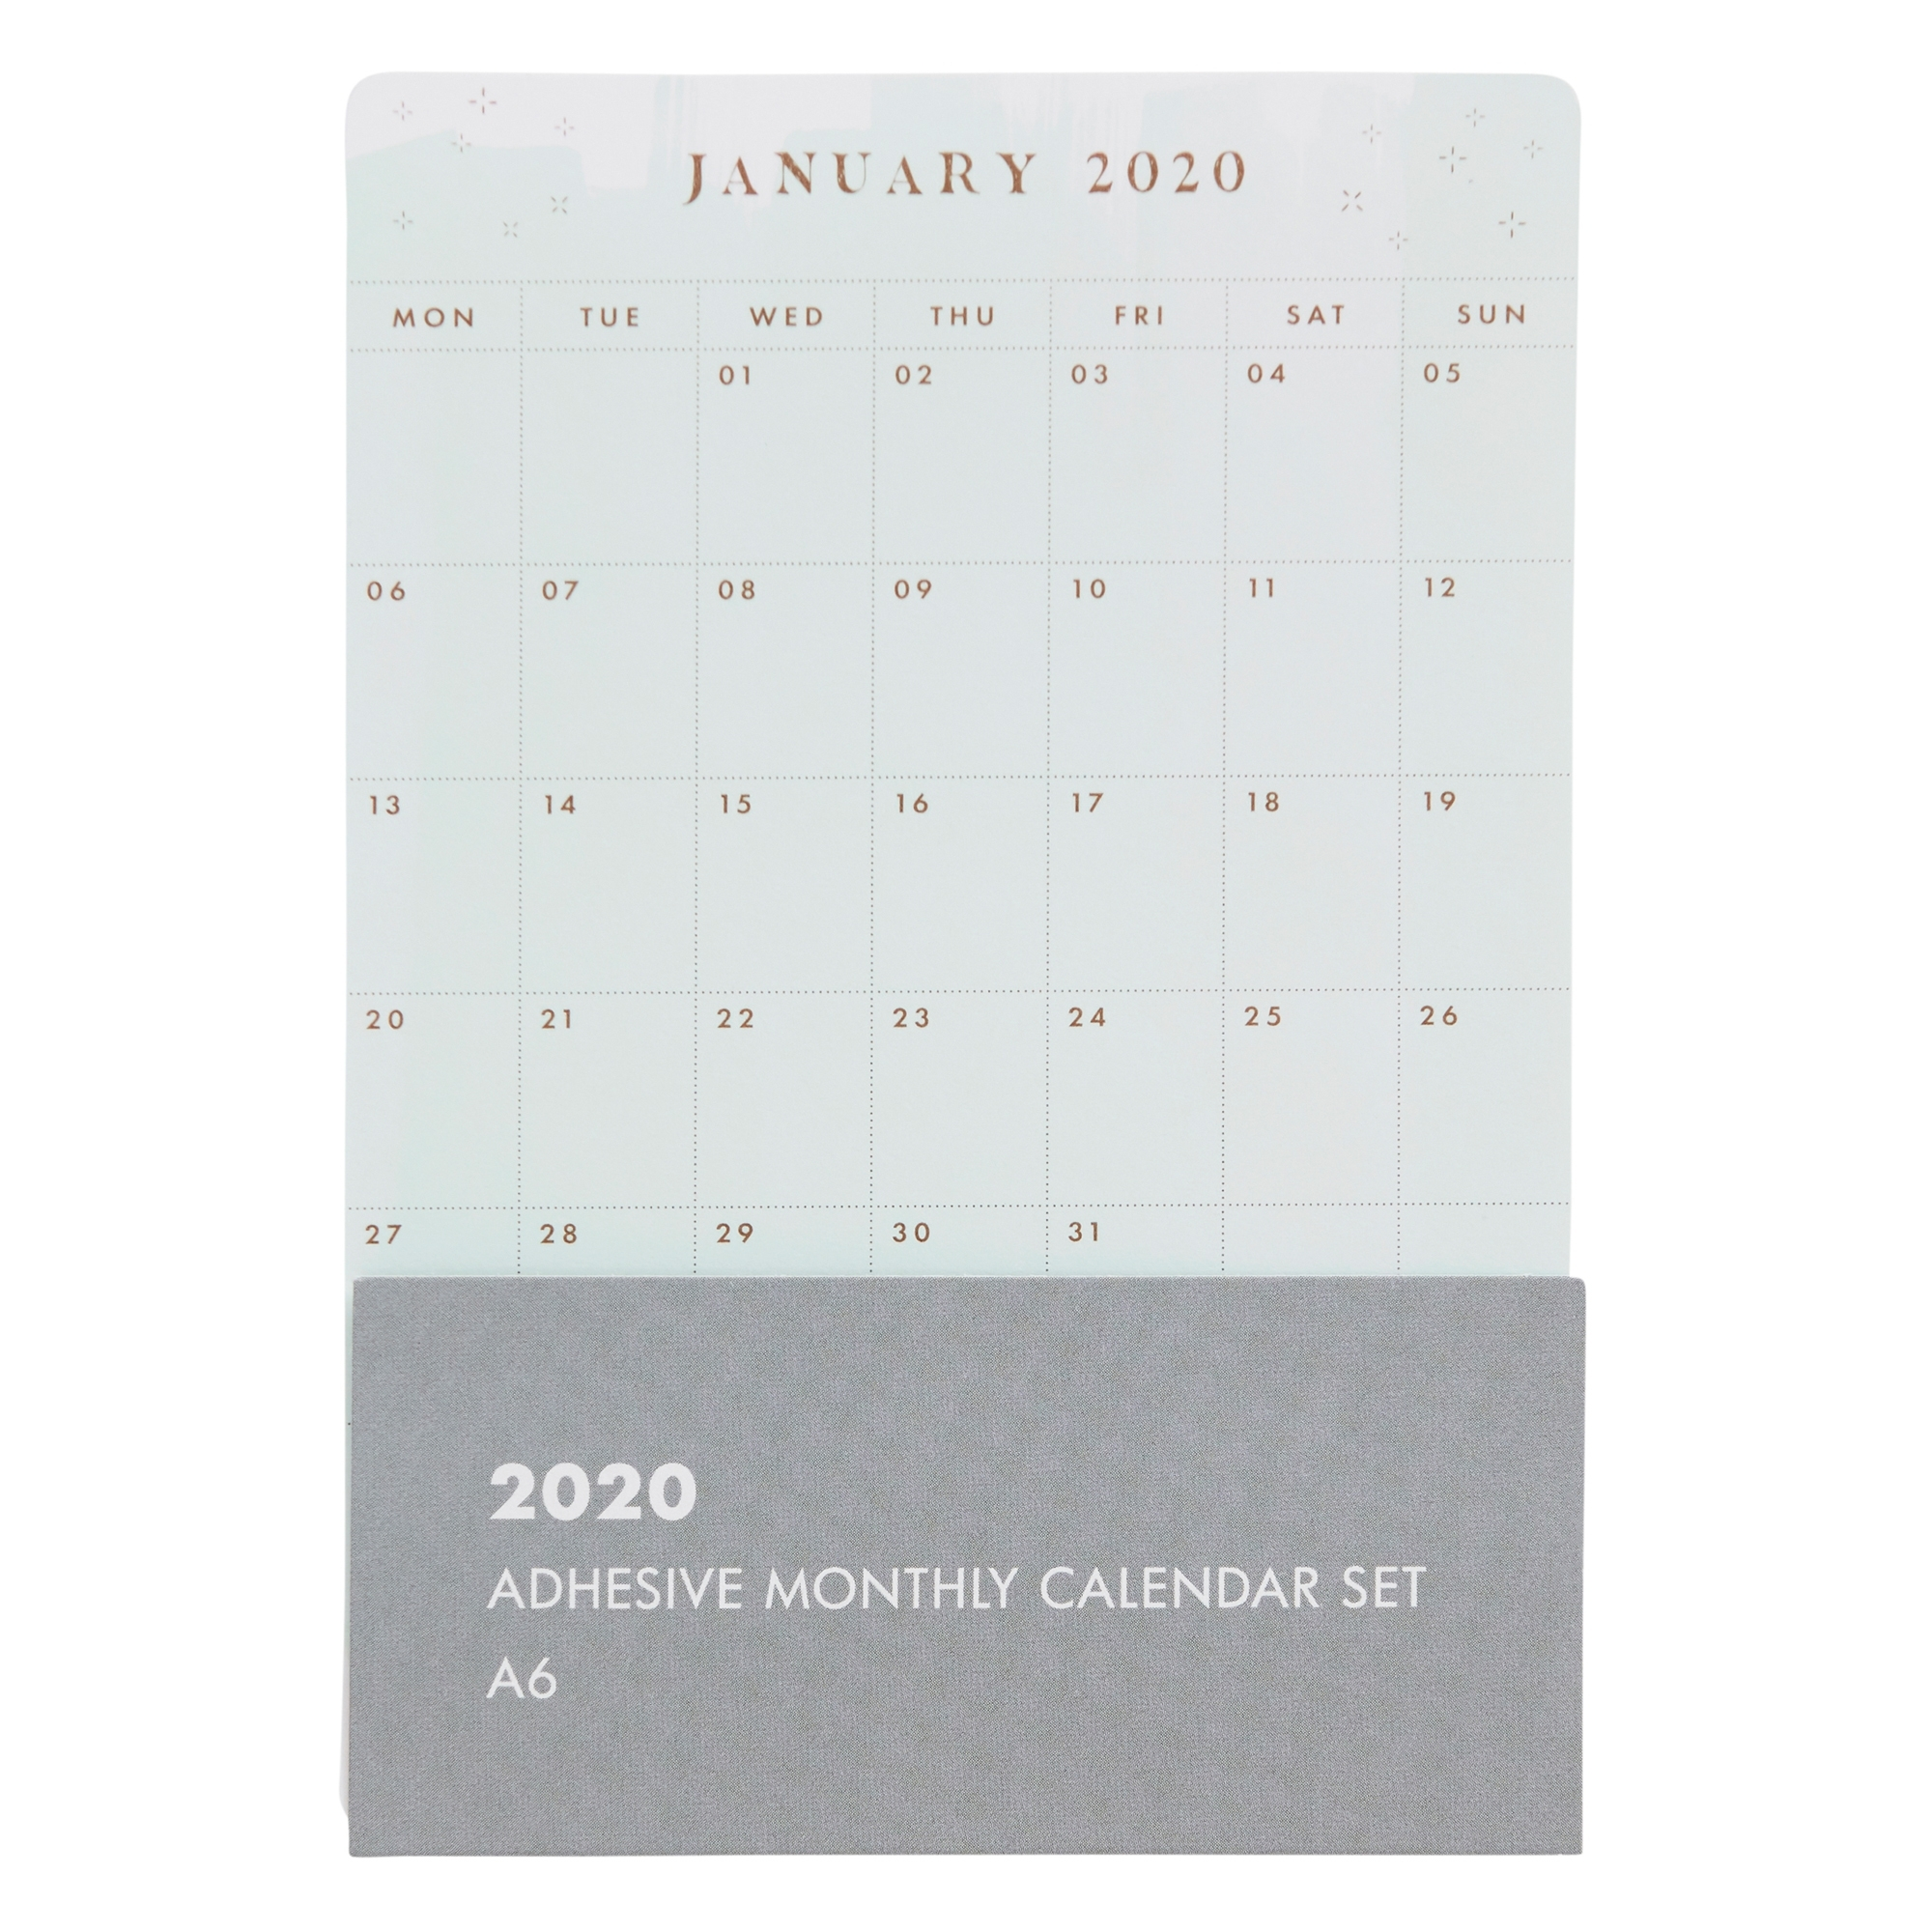 2020 Adhesive Monthly Calendar Set: She Shines